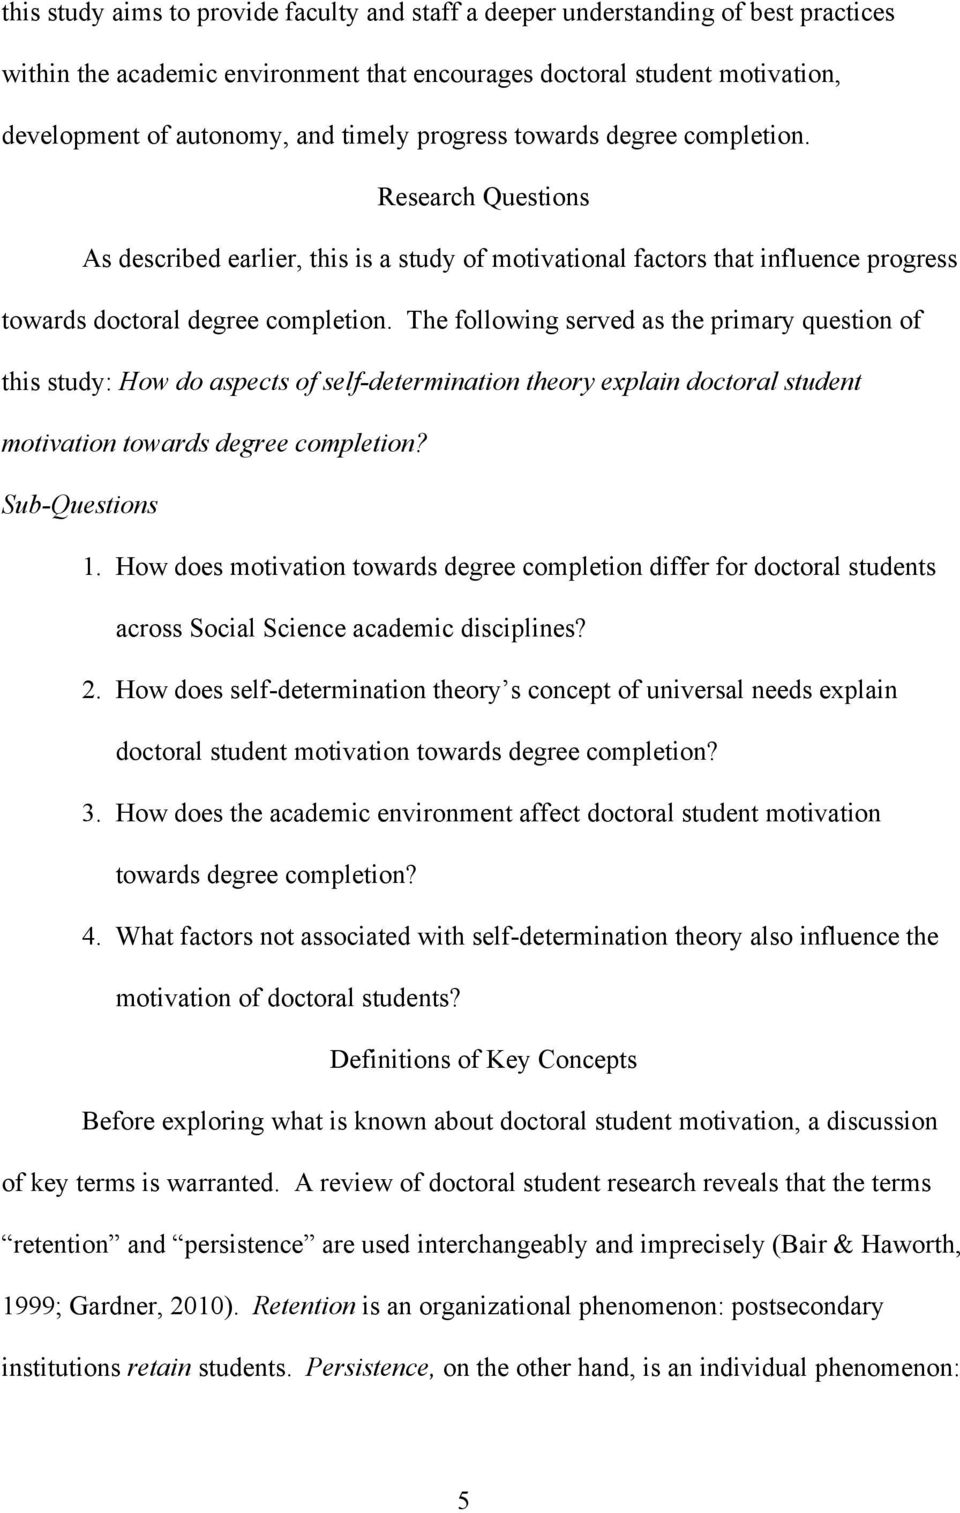 The following served as the primary question of this study: How do aspects of self-determination theory explain doctoral student motivation towards degree completion? Sub-Questions 1.